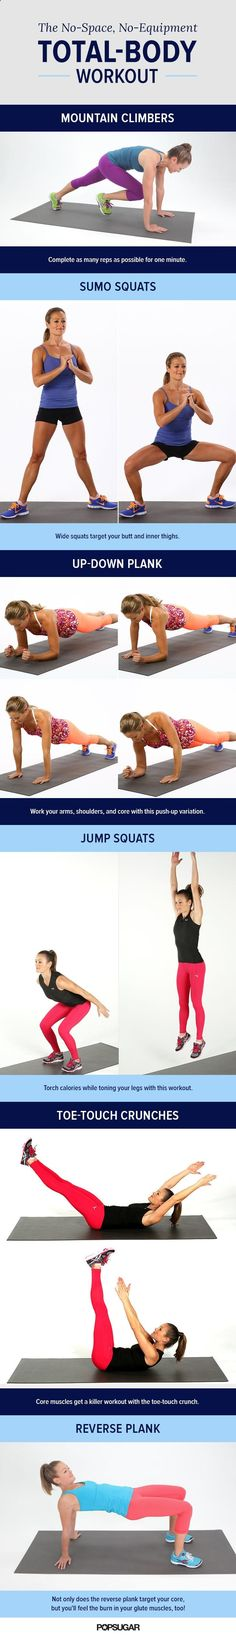 This no-equipment, no-excuses workout will tone from head to toe. Its just 20 minutes. Print it to do at home, on vacation, or at the gym.